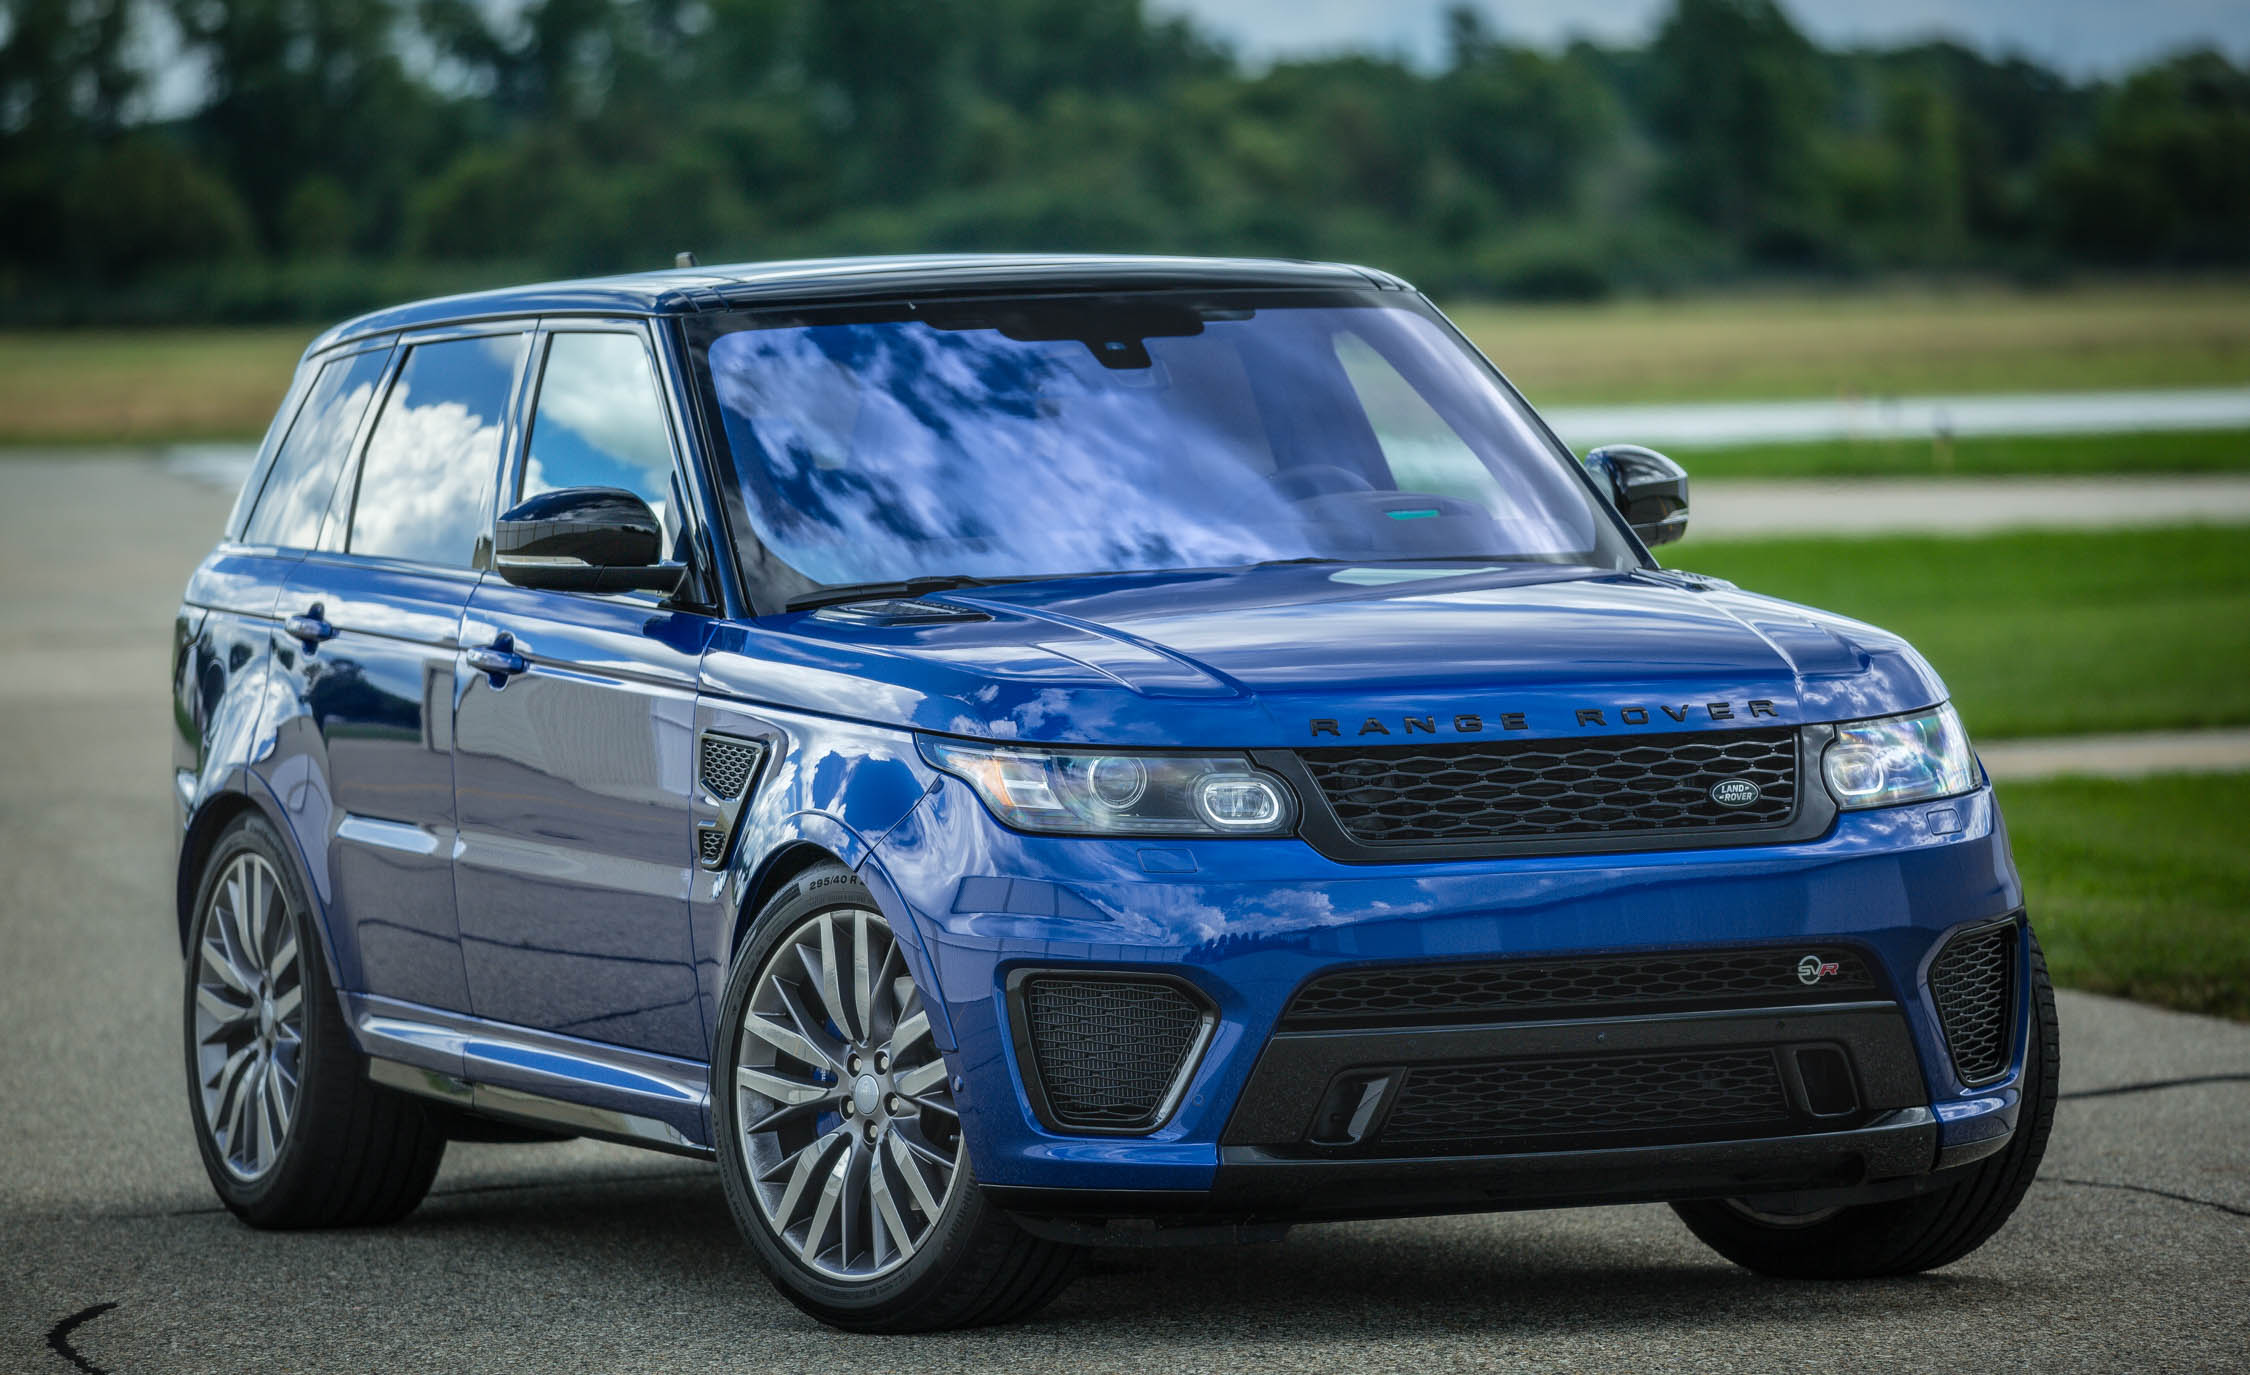 2016 Land Rover Range Rover Sport SVR (View 6 of 7)